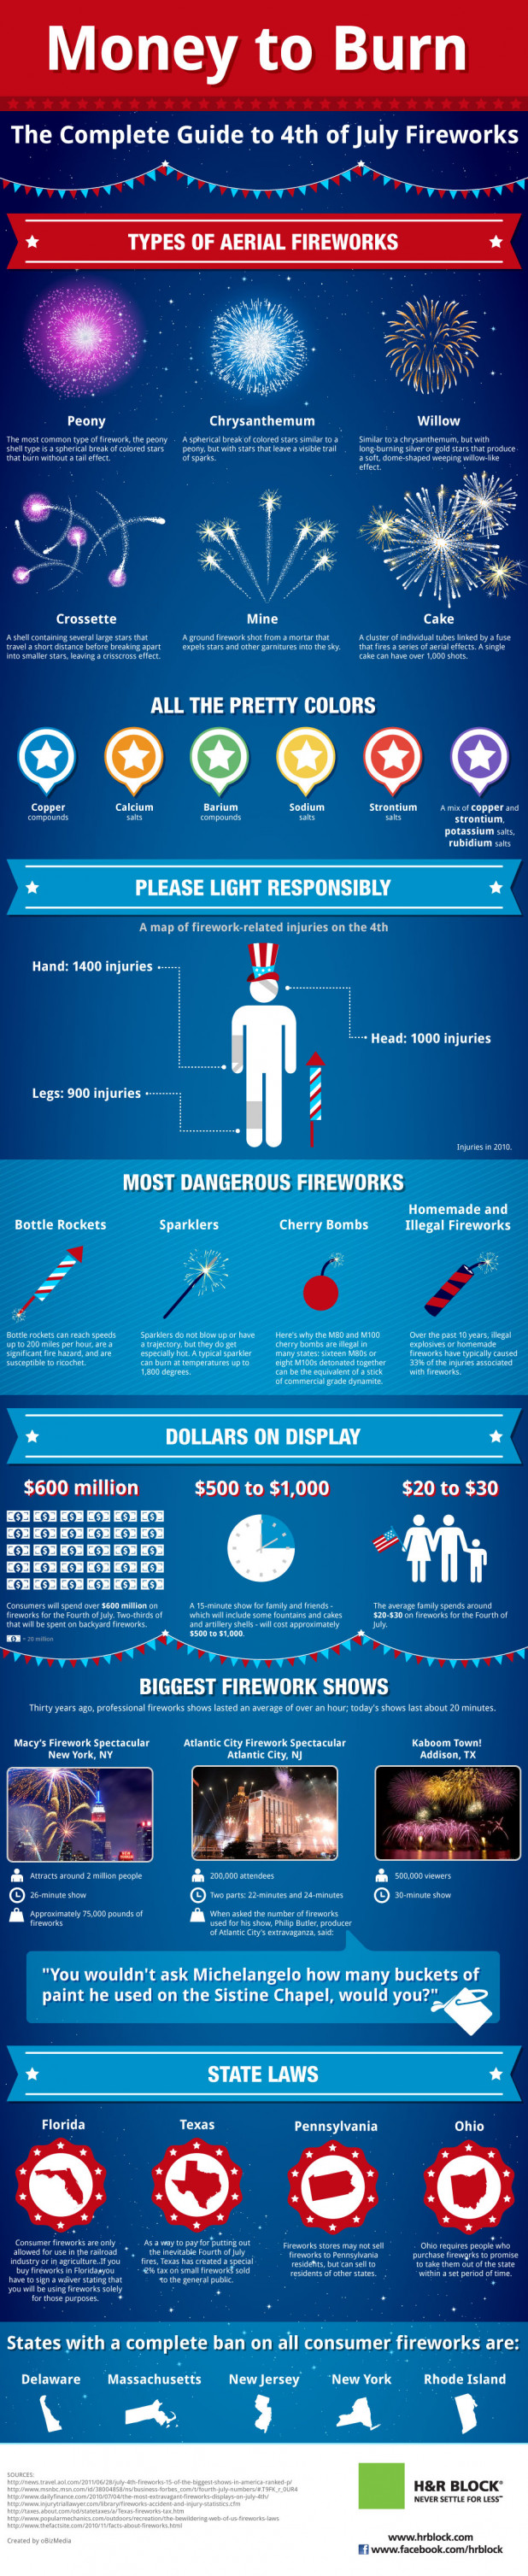 The Complete Guide to July 4th Fireworks